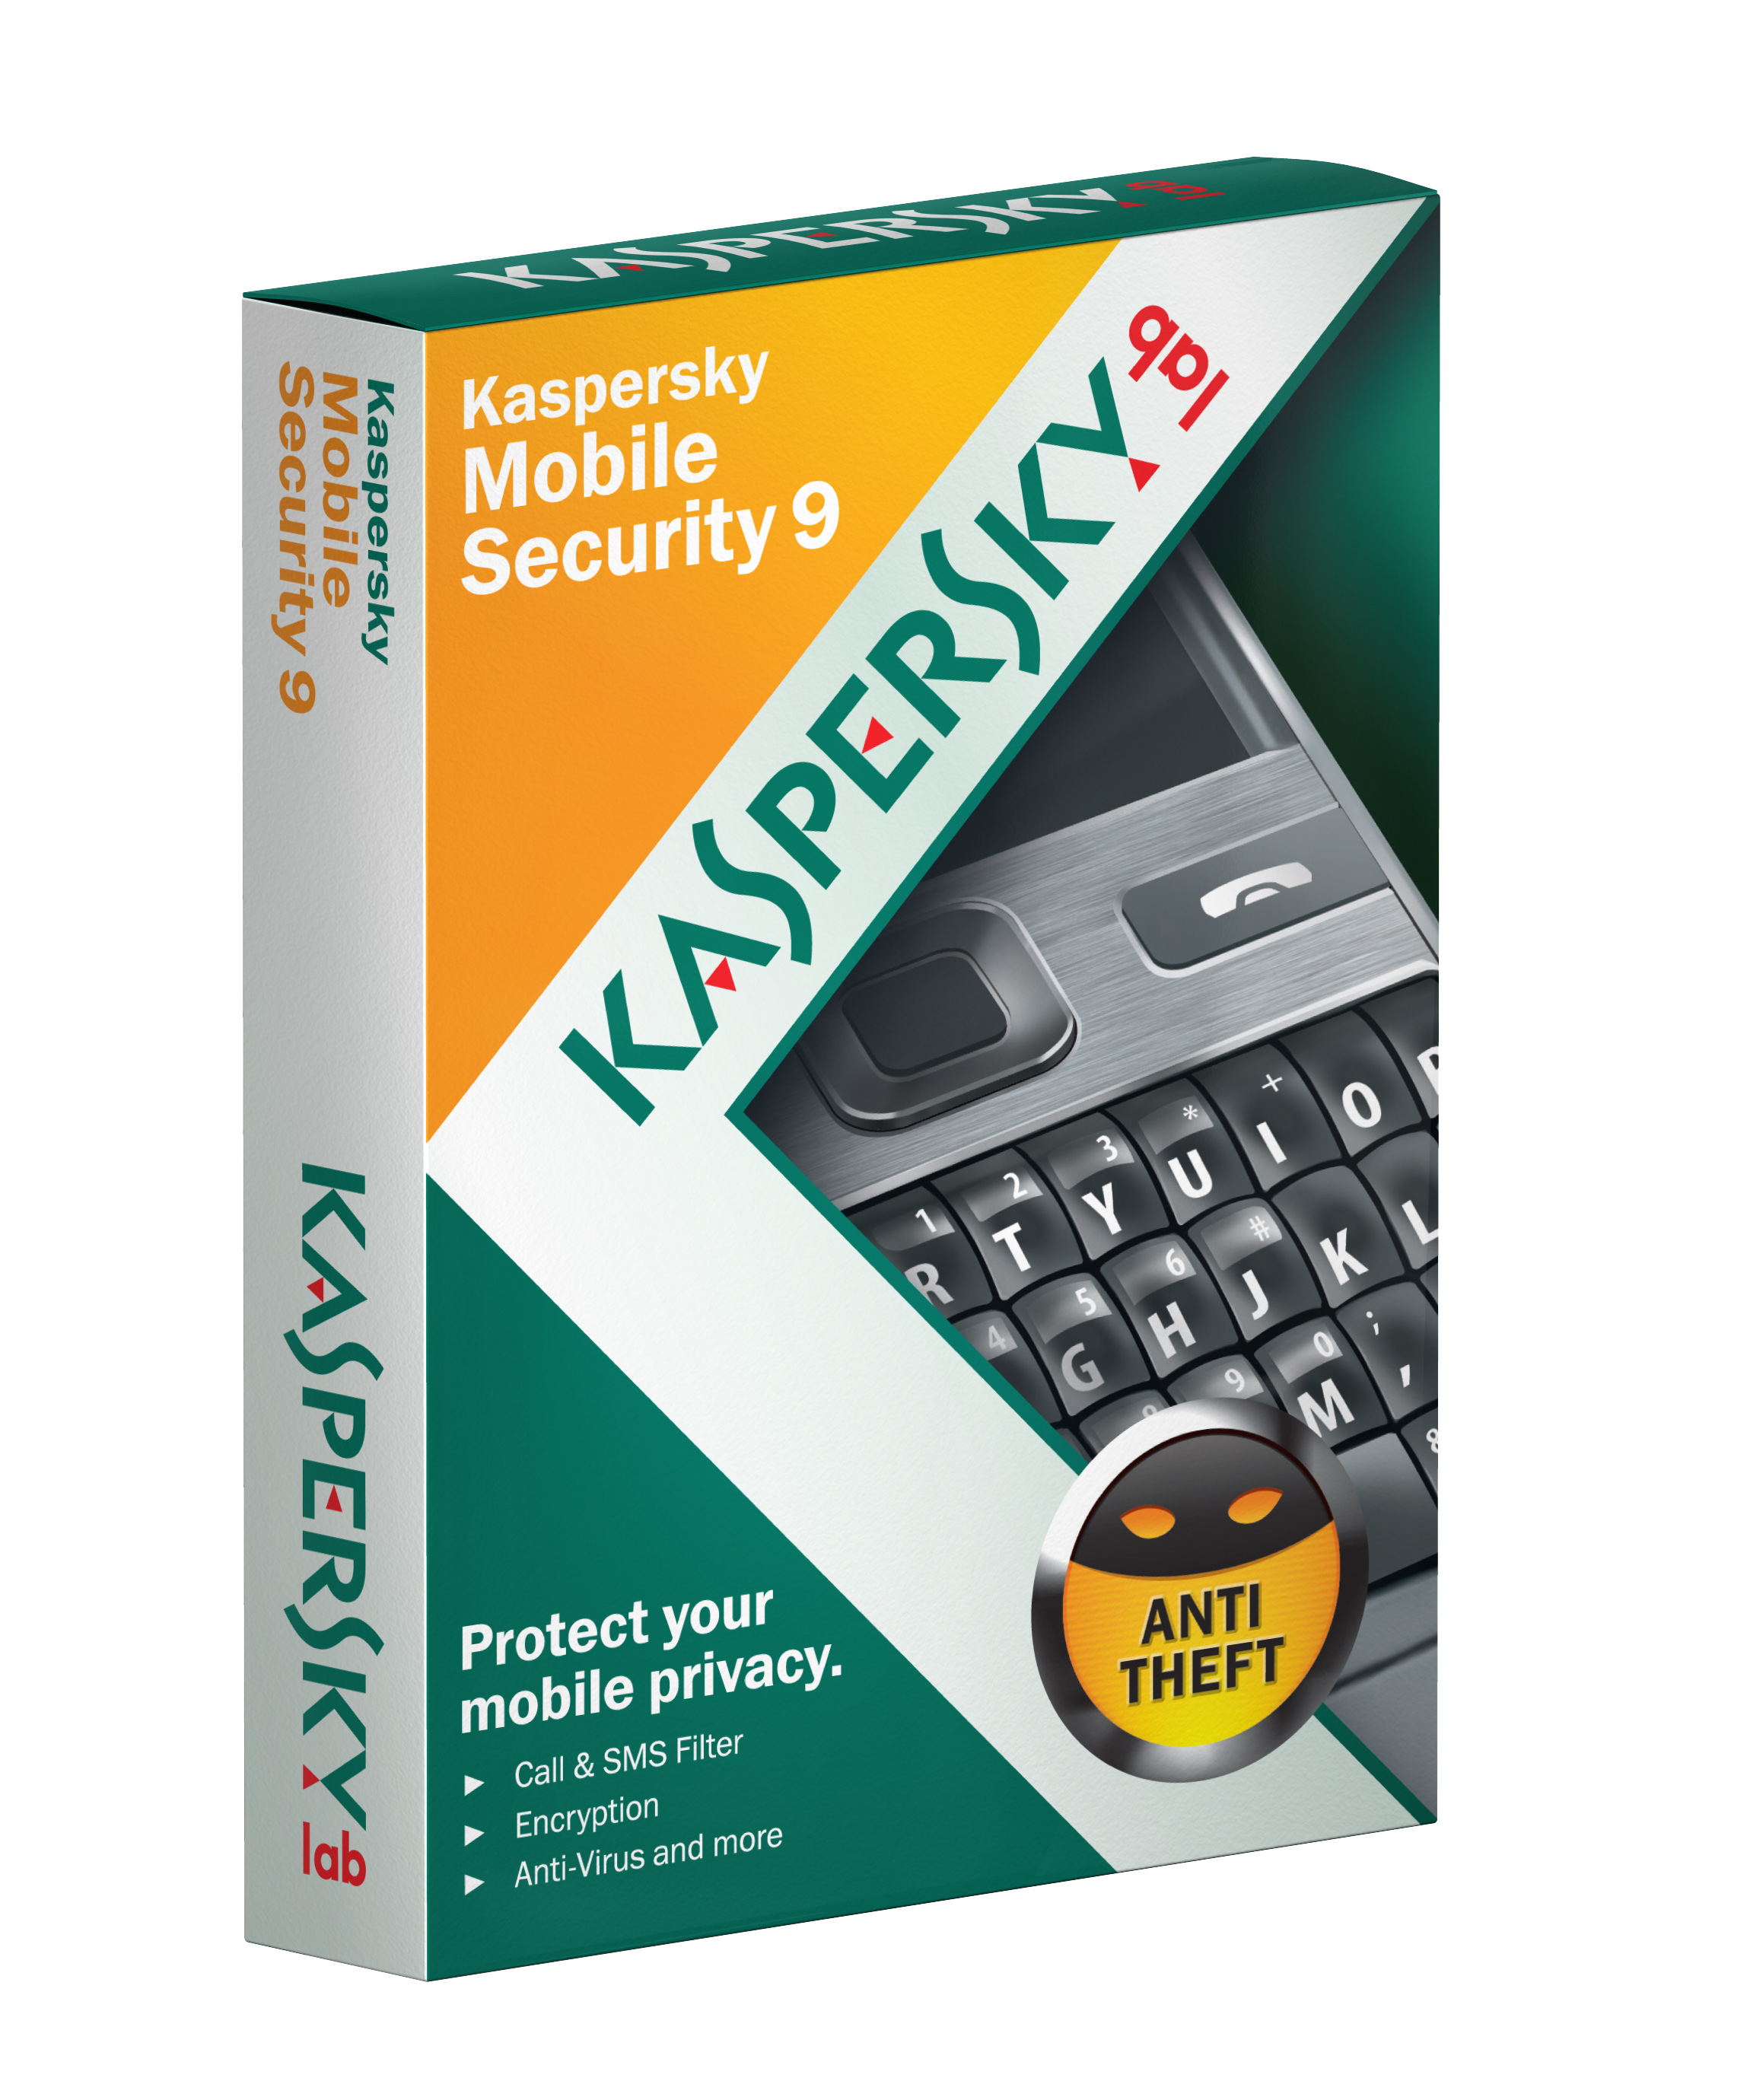 Download Kaspersky Mobile Security Latest Version APK File